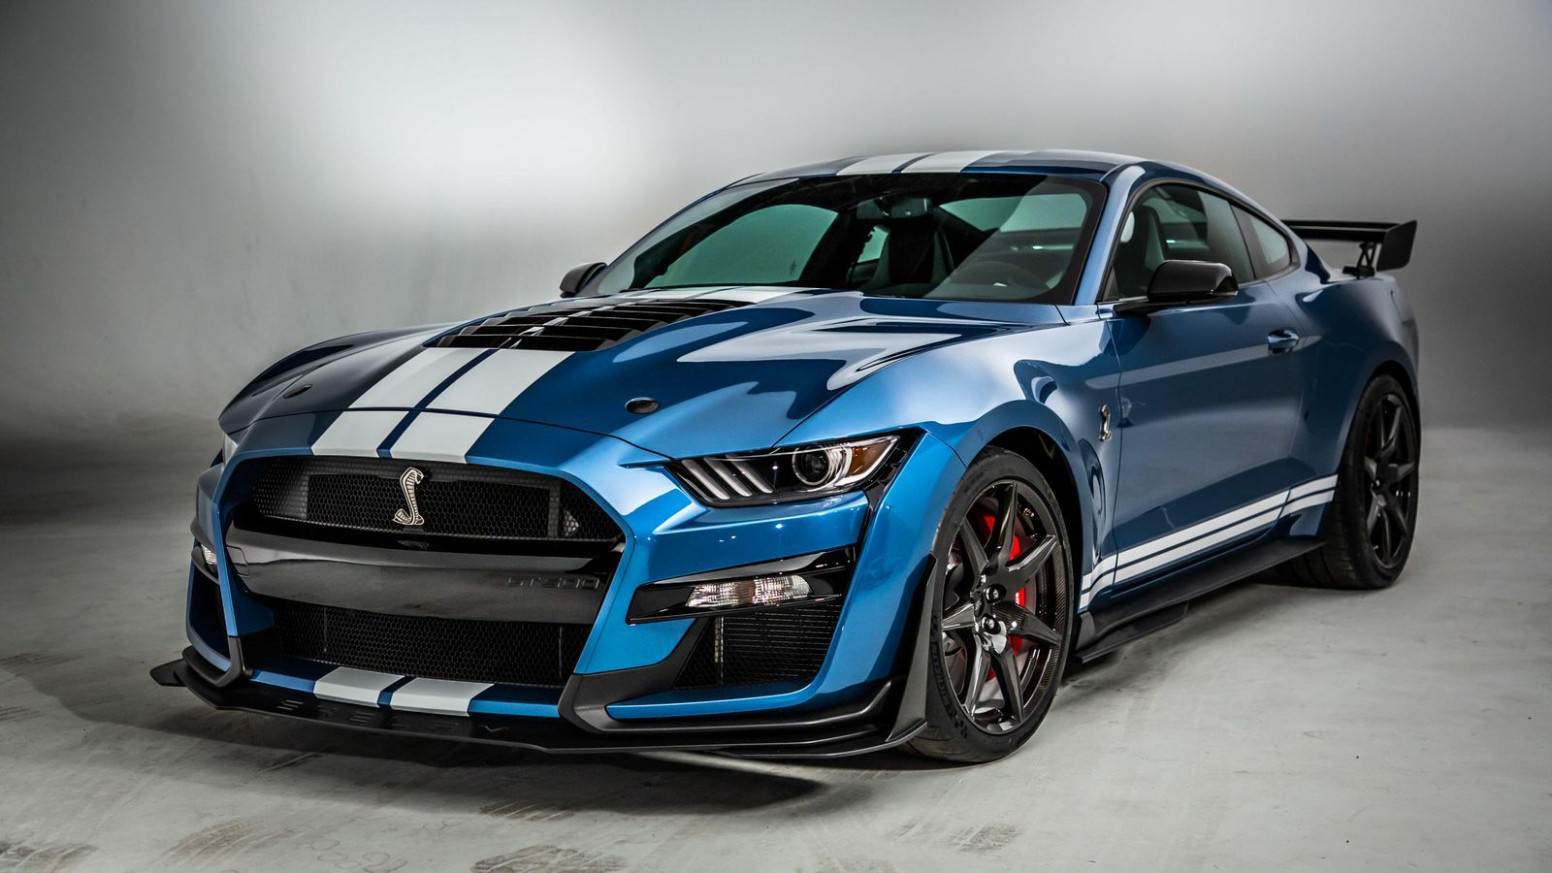 12 Ford Mustang Shelby GT12 brings 12 horsepower to compete ...